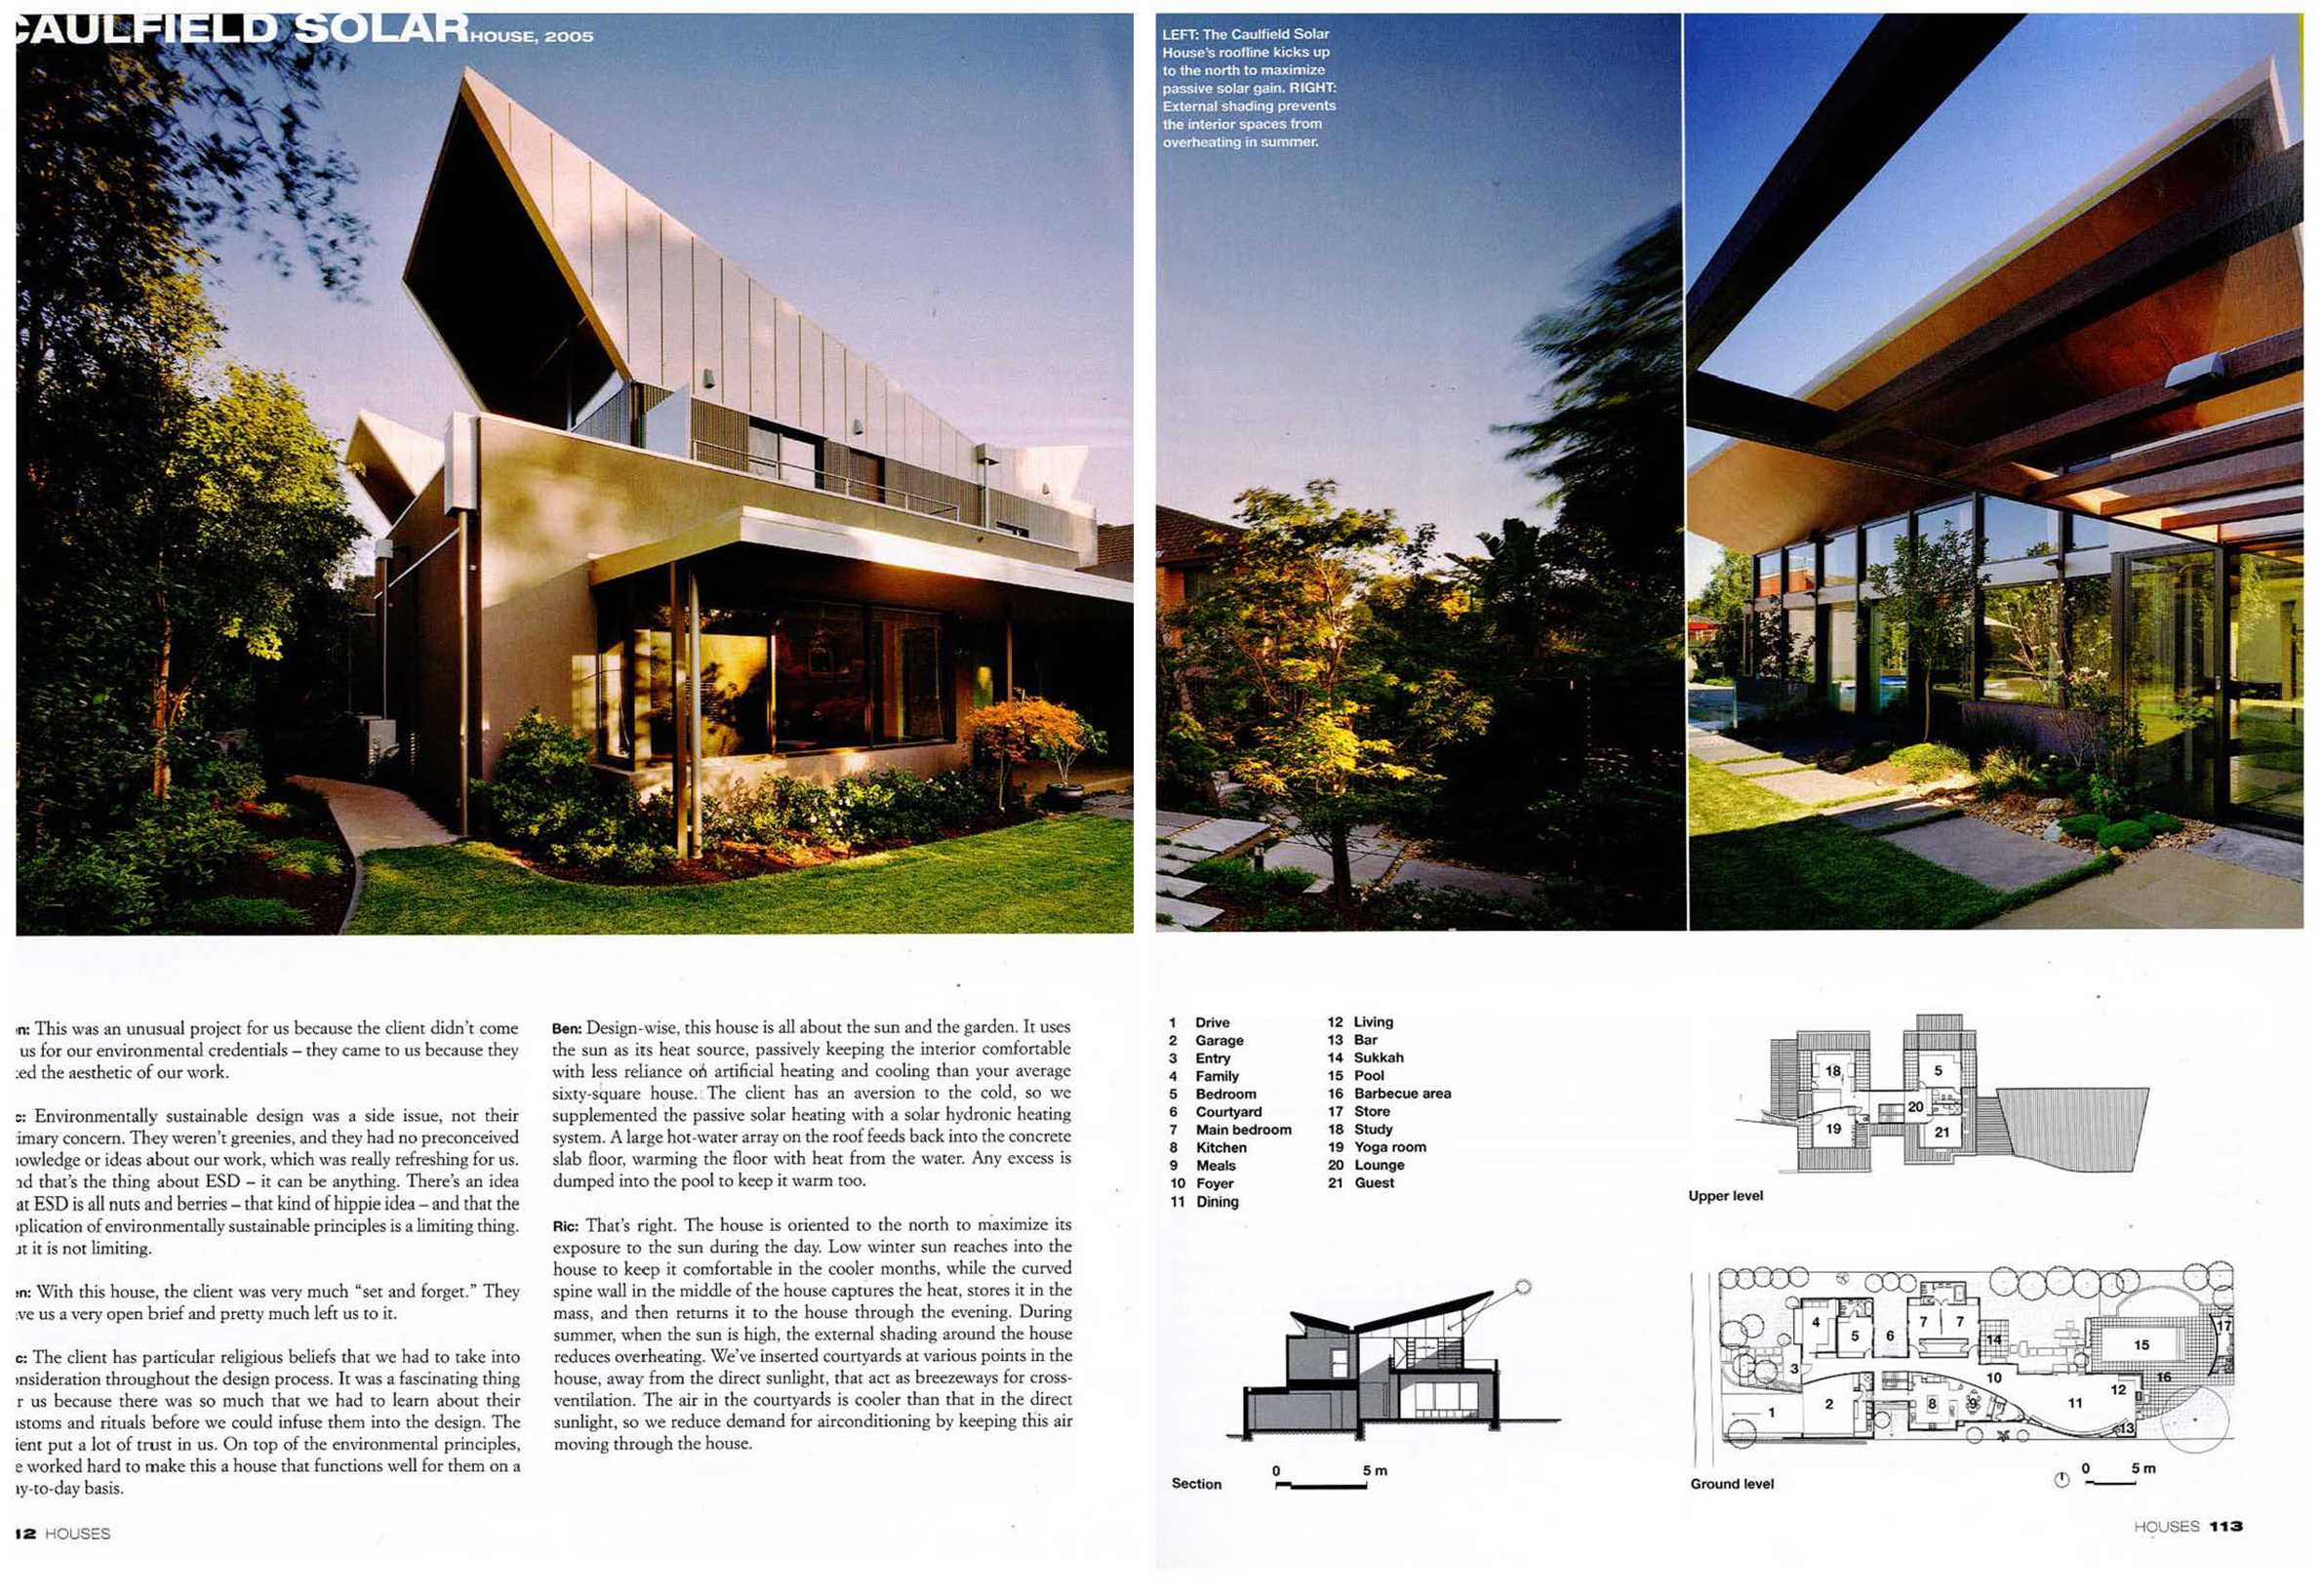 2008_Houses Magazine_Eco-Chic Abodes_Page_4-5.jpg